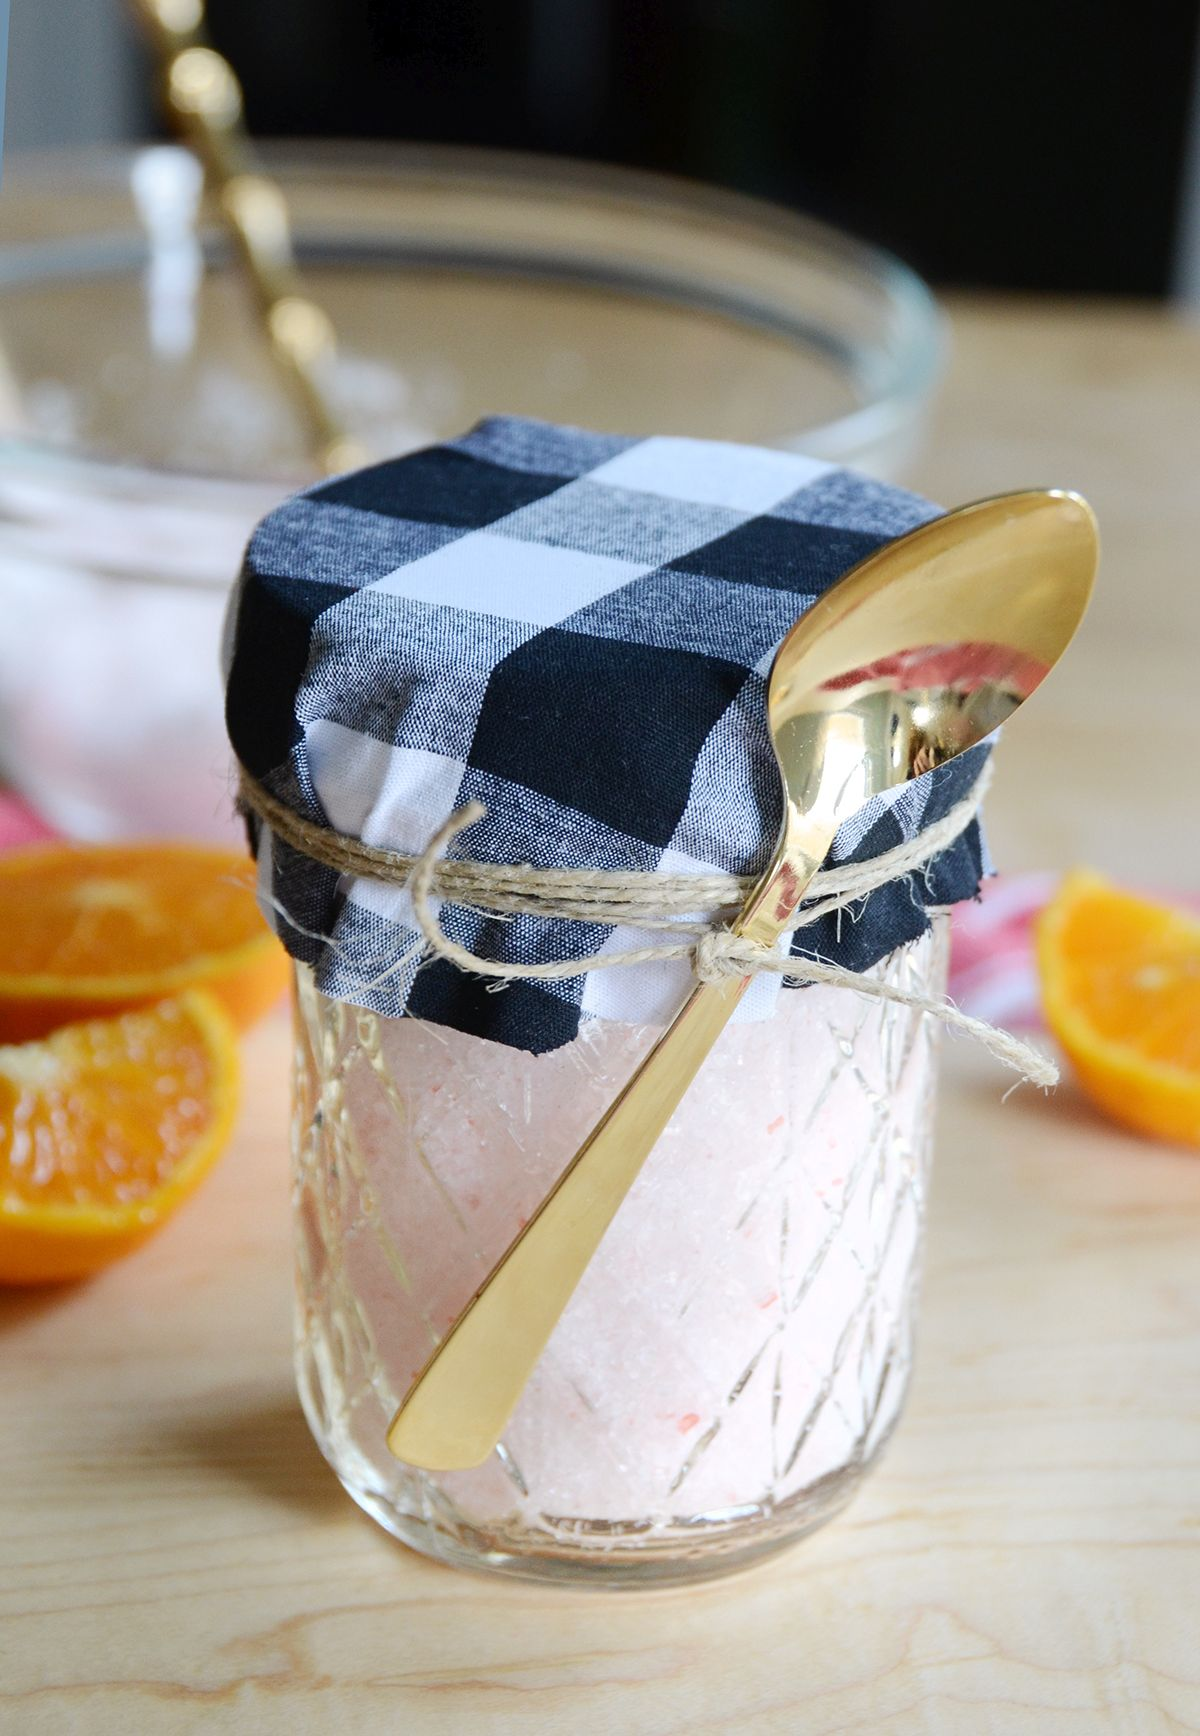 Simple scented diy bath salts gift idea